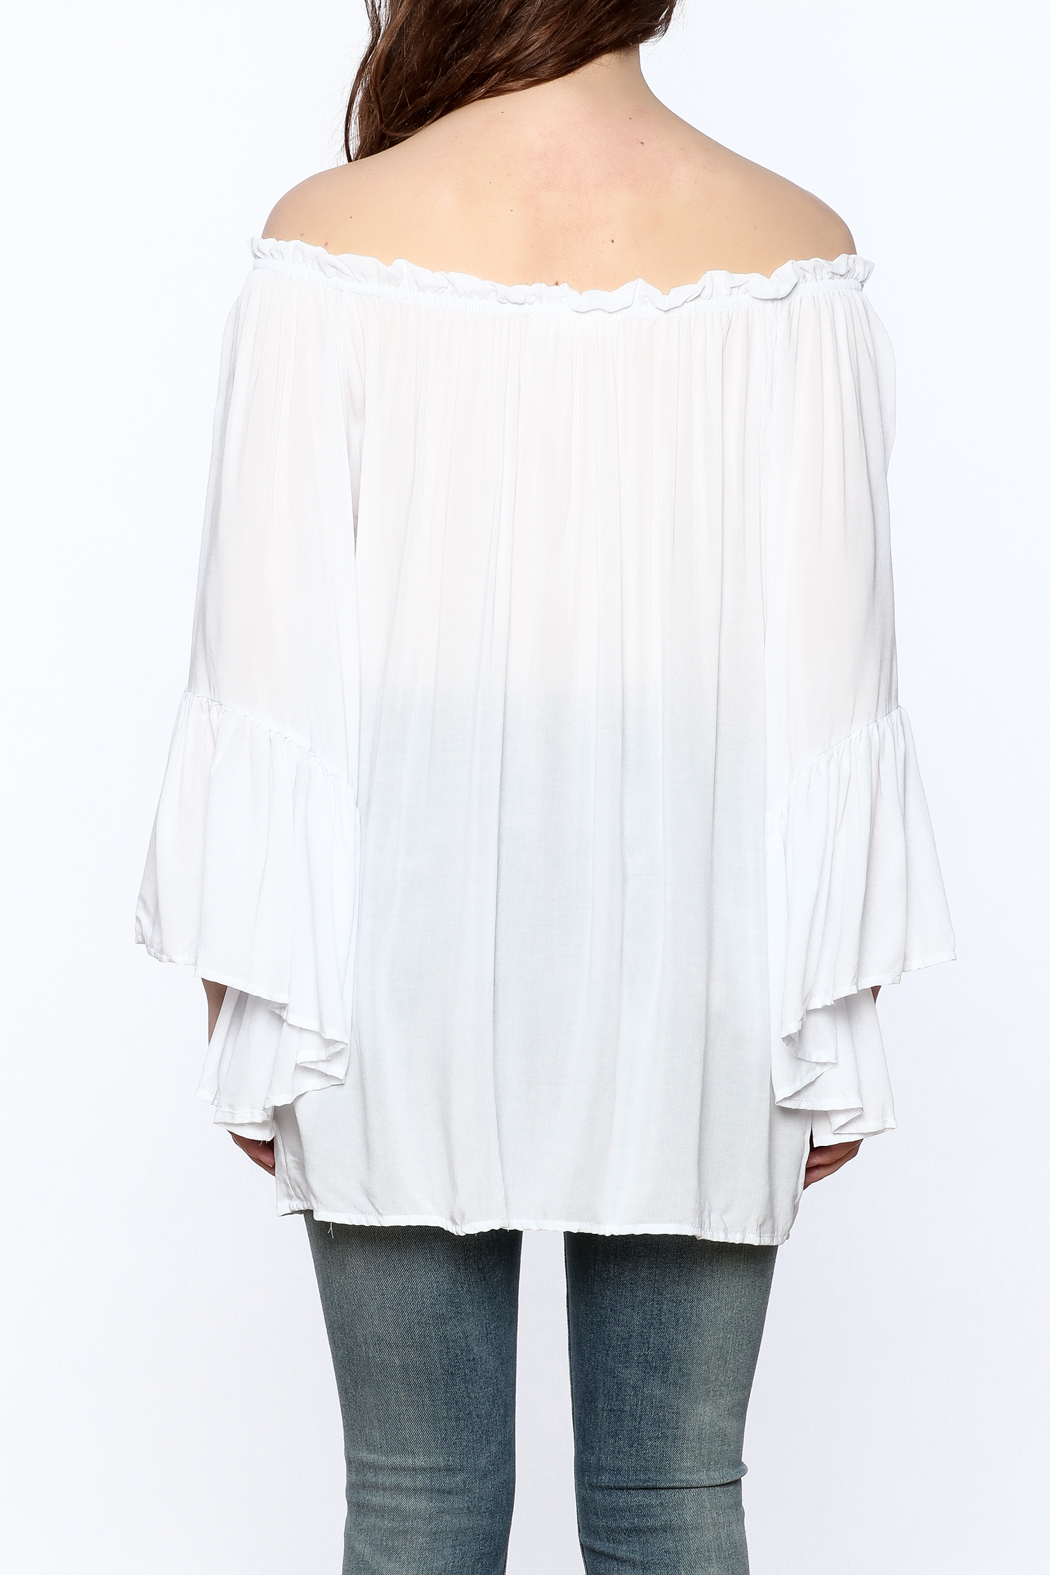 Elan Flowy White Tunic Top - Back Cropped Image